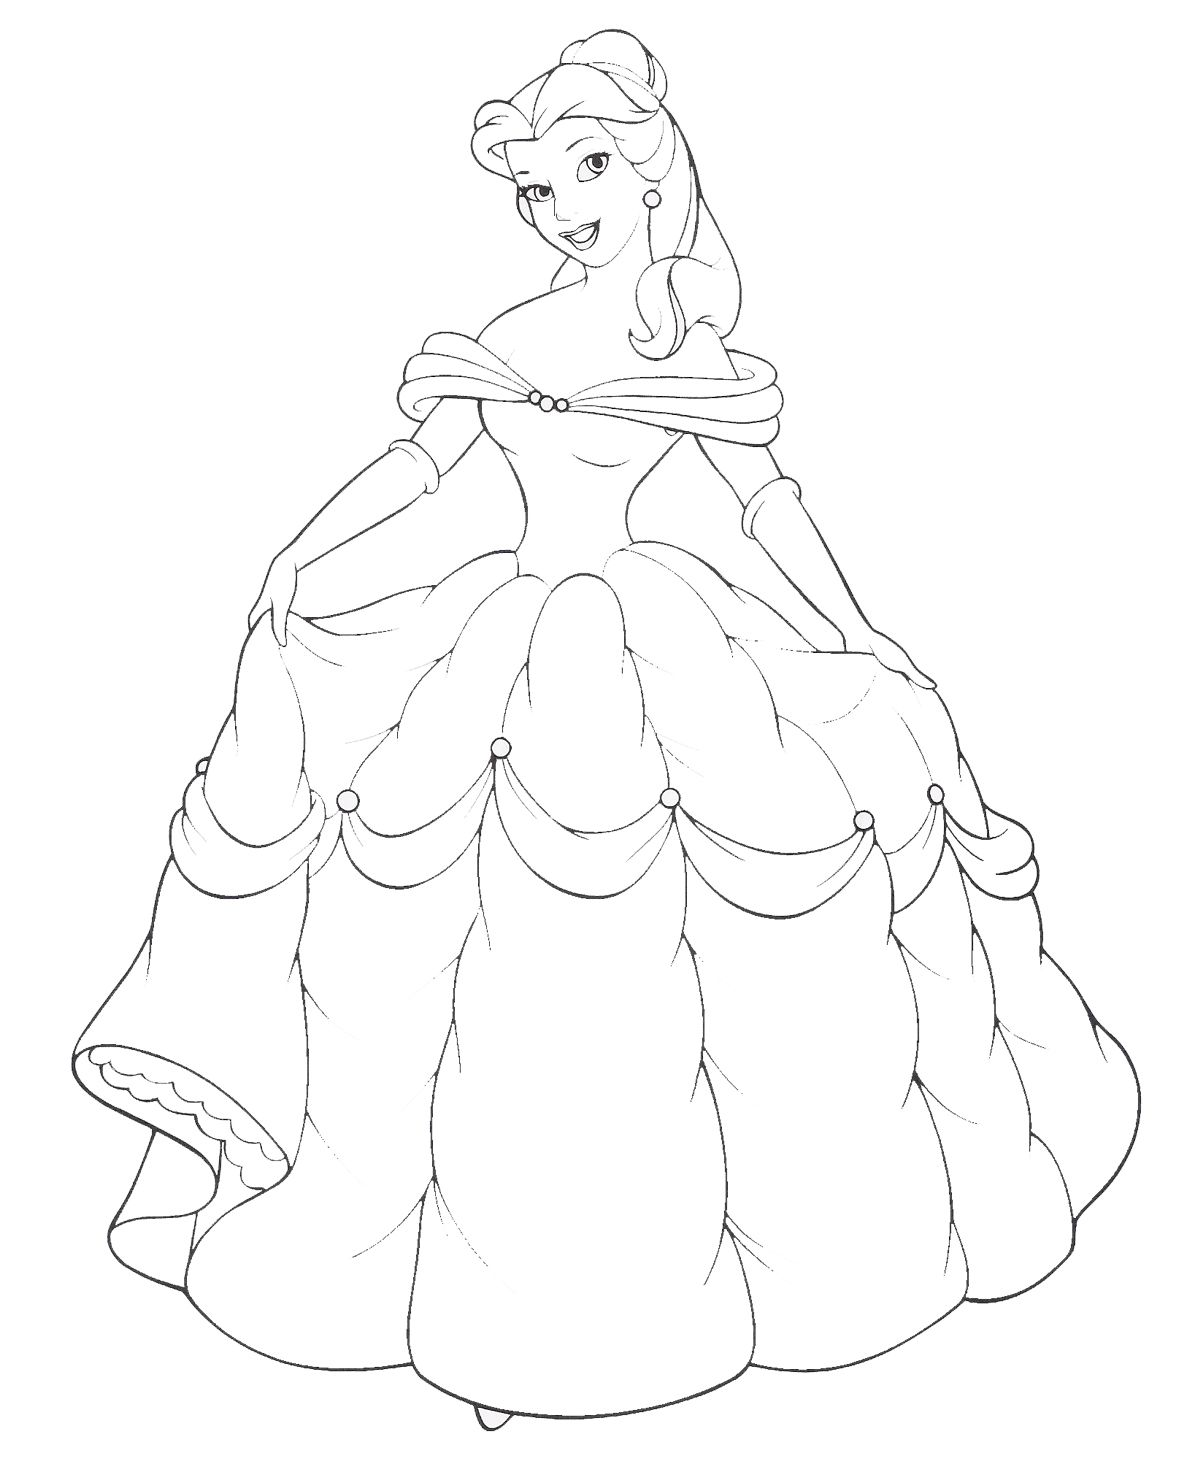 All princess coloring pages - Disney Princess Belle And Her Gown Coloring Sheet To Paint On Canvas As A Silhouette